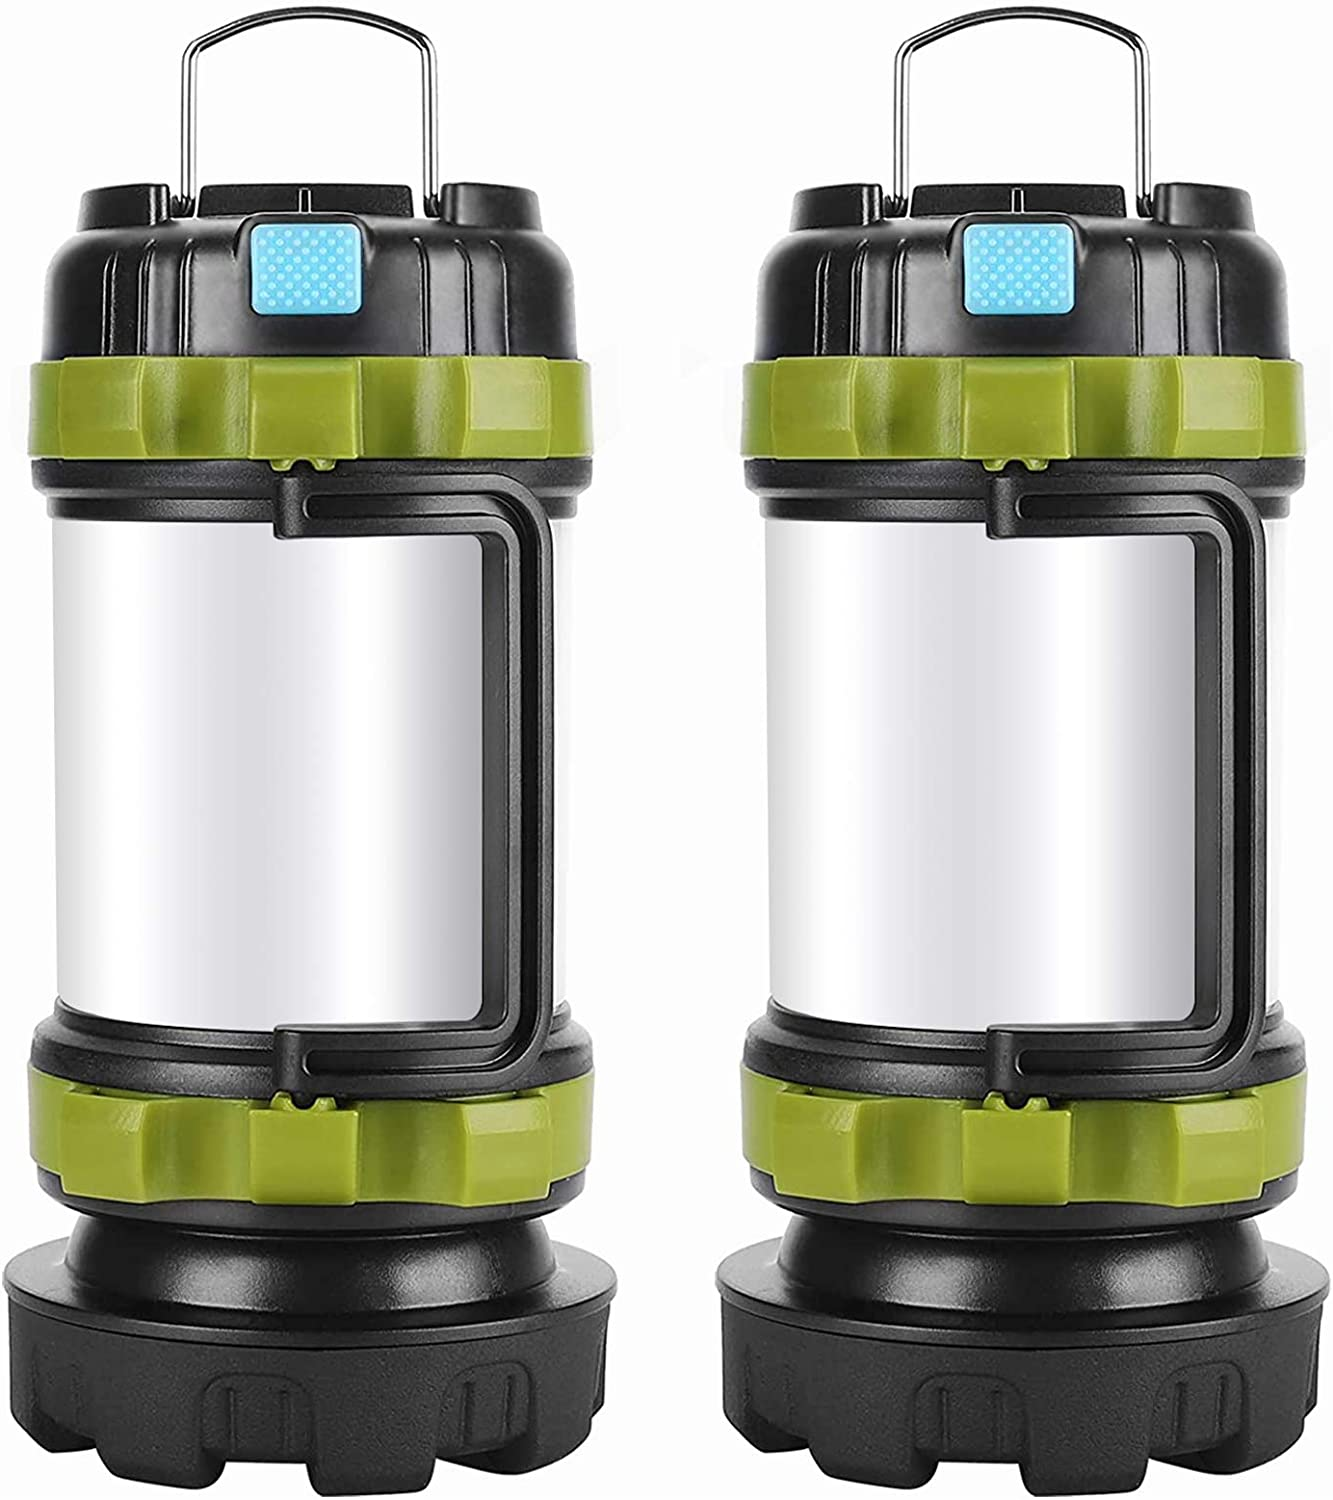 Camping Lantern Rechargeable , Alpswolf Camping Flashlight 4000mAh Power Bank,6 Modes, IPX4 Waterproof, Led Lantern Camping, Hiking, Outdoor Recreations, USB Charging Cable Included(2 Pack)